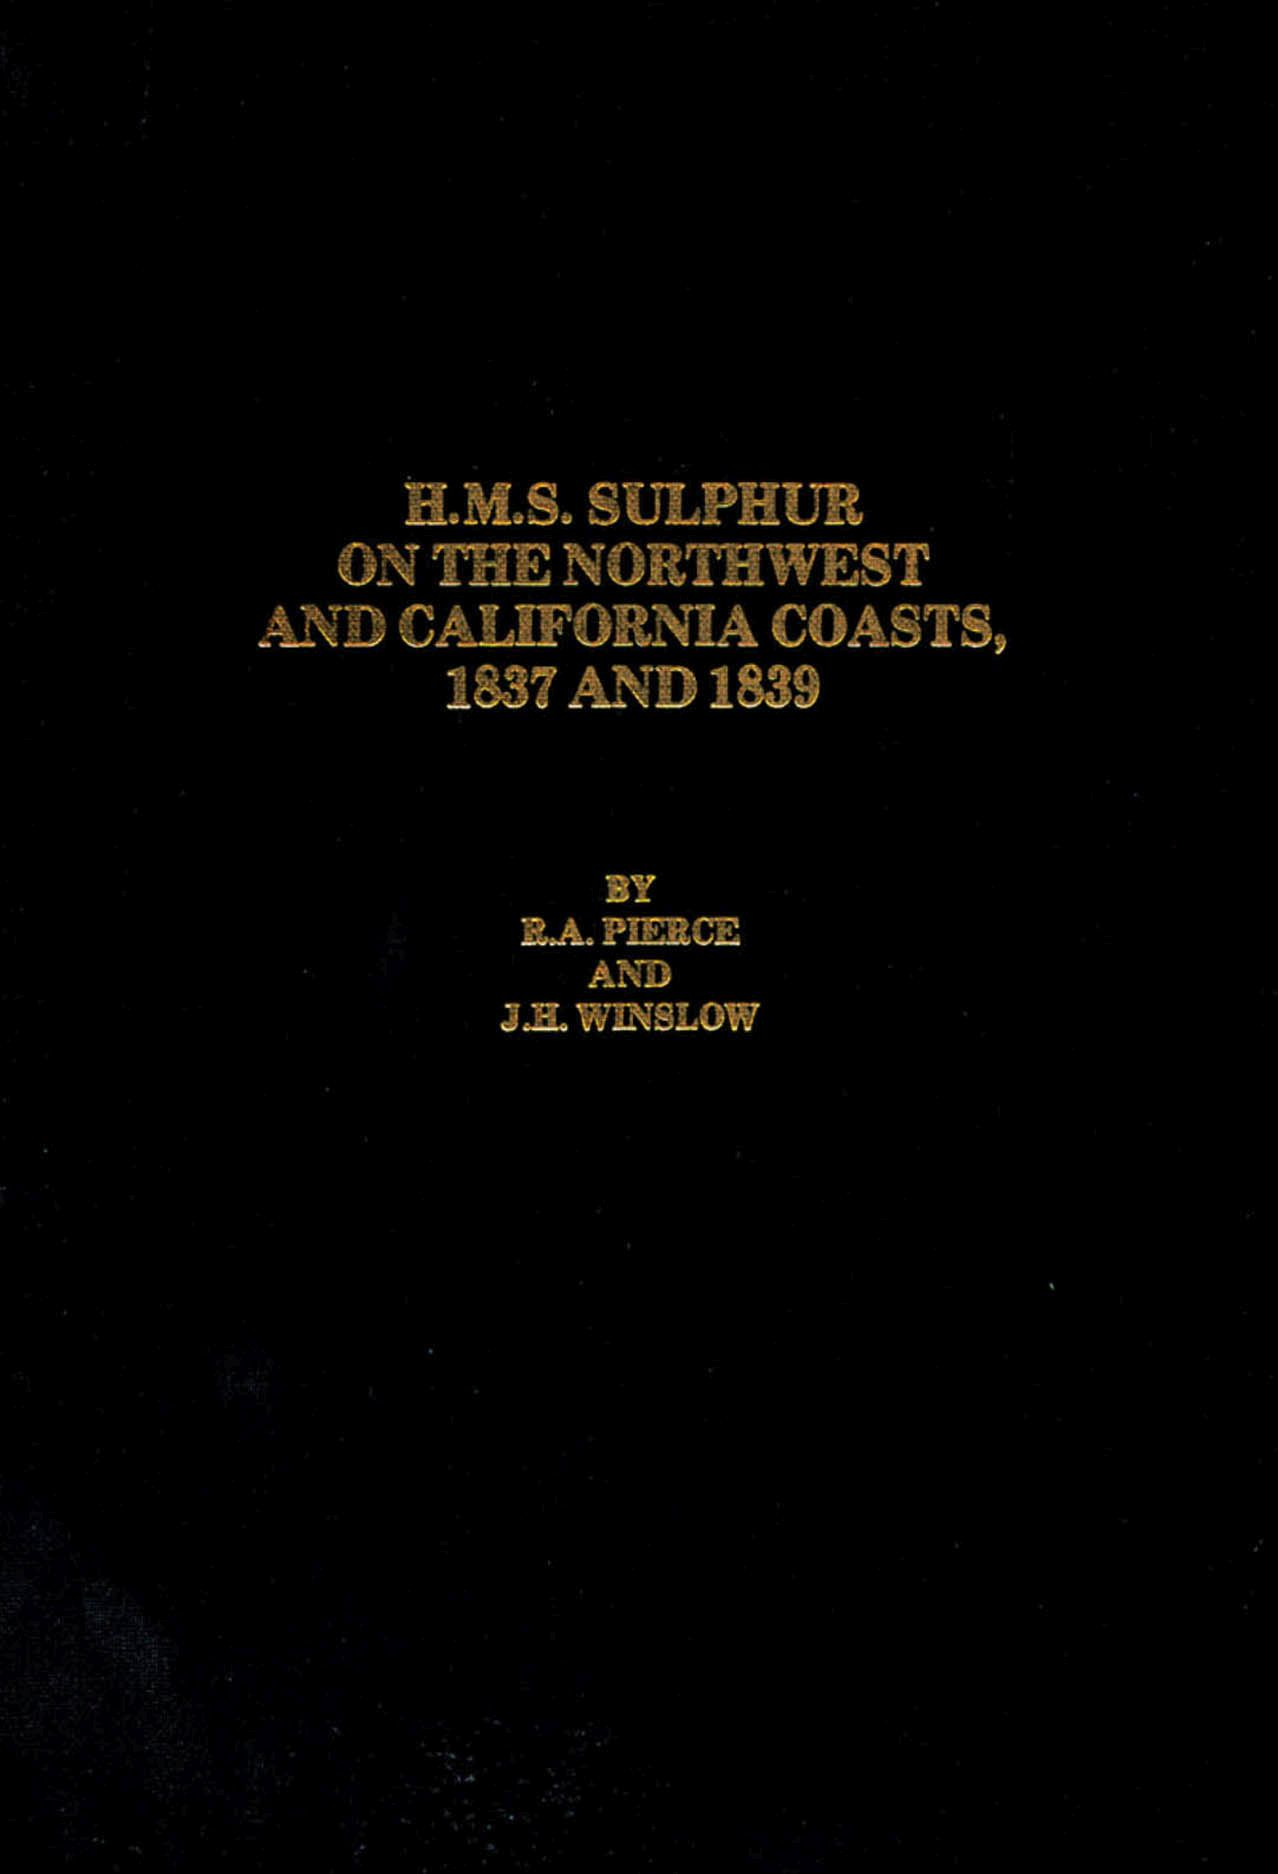 H.M.S. Sulphur on the Northwest and California Coasts, 1837 and 1839